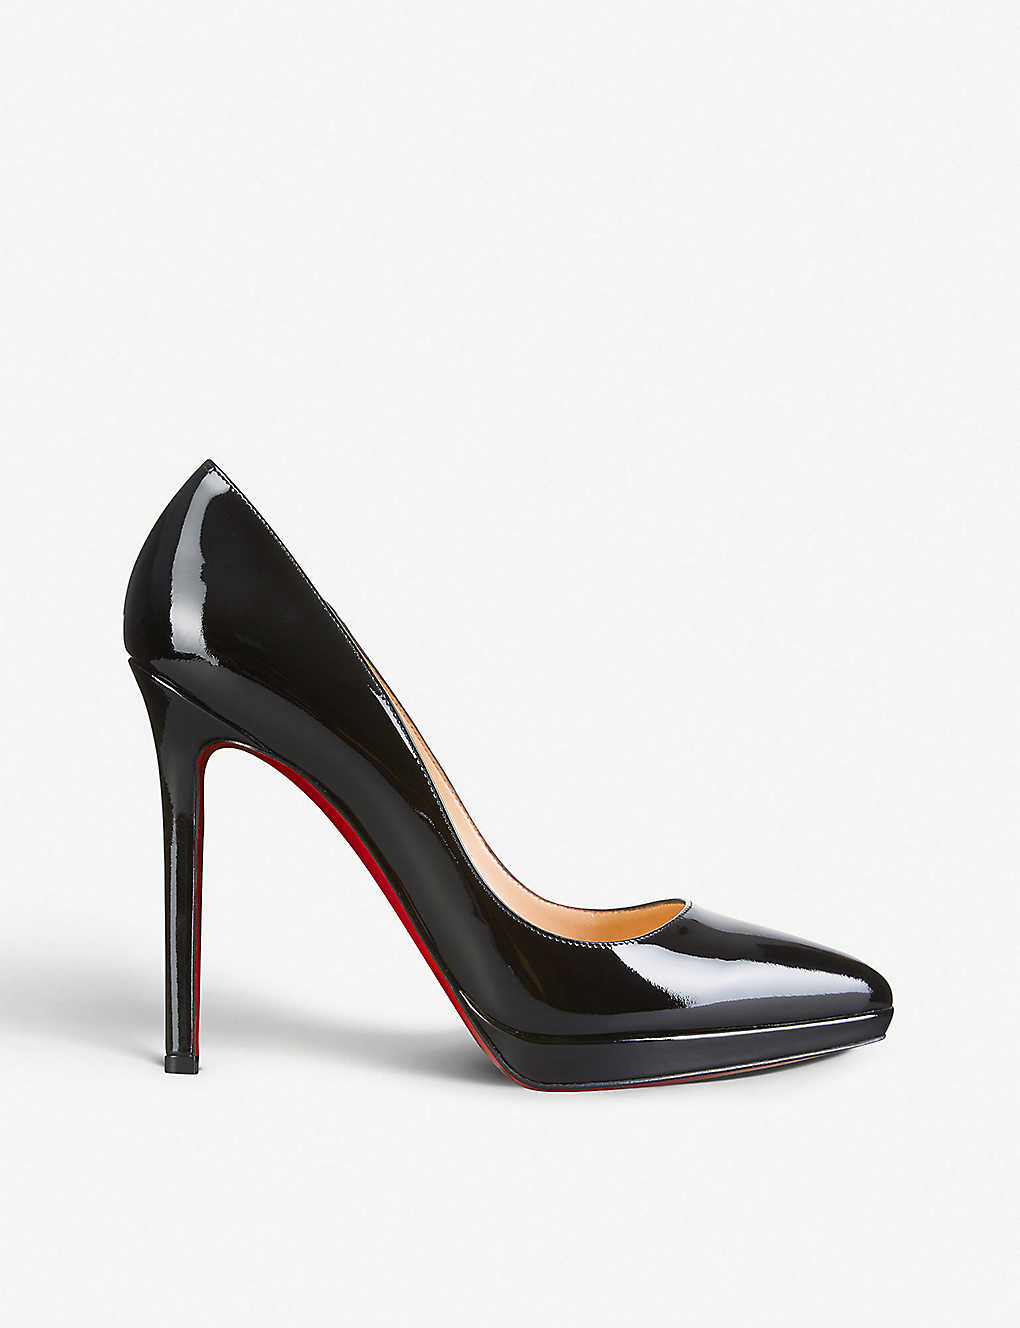 56c29c0594f1 CHRISTIAN LOUBOUTIN - Pigalle plato 120 patent calf